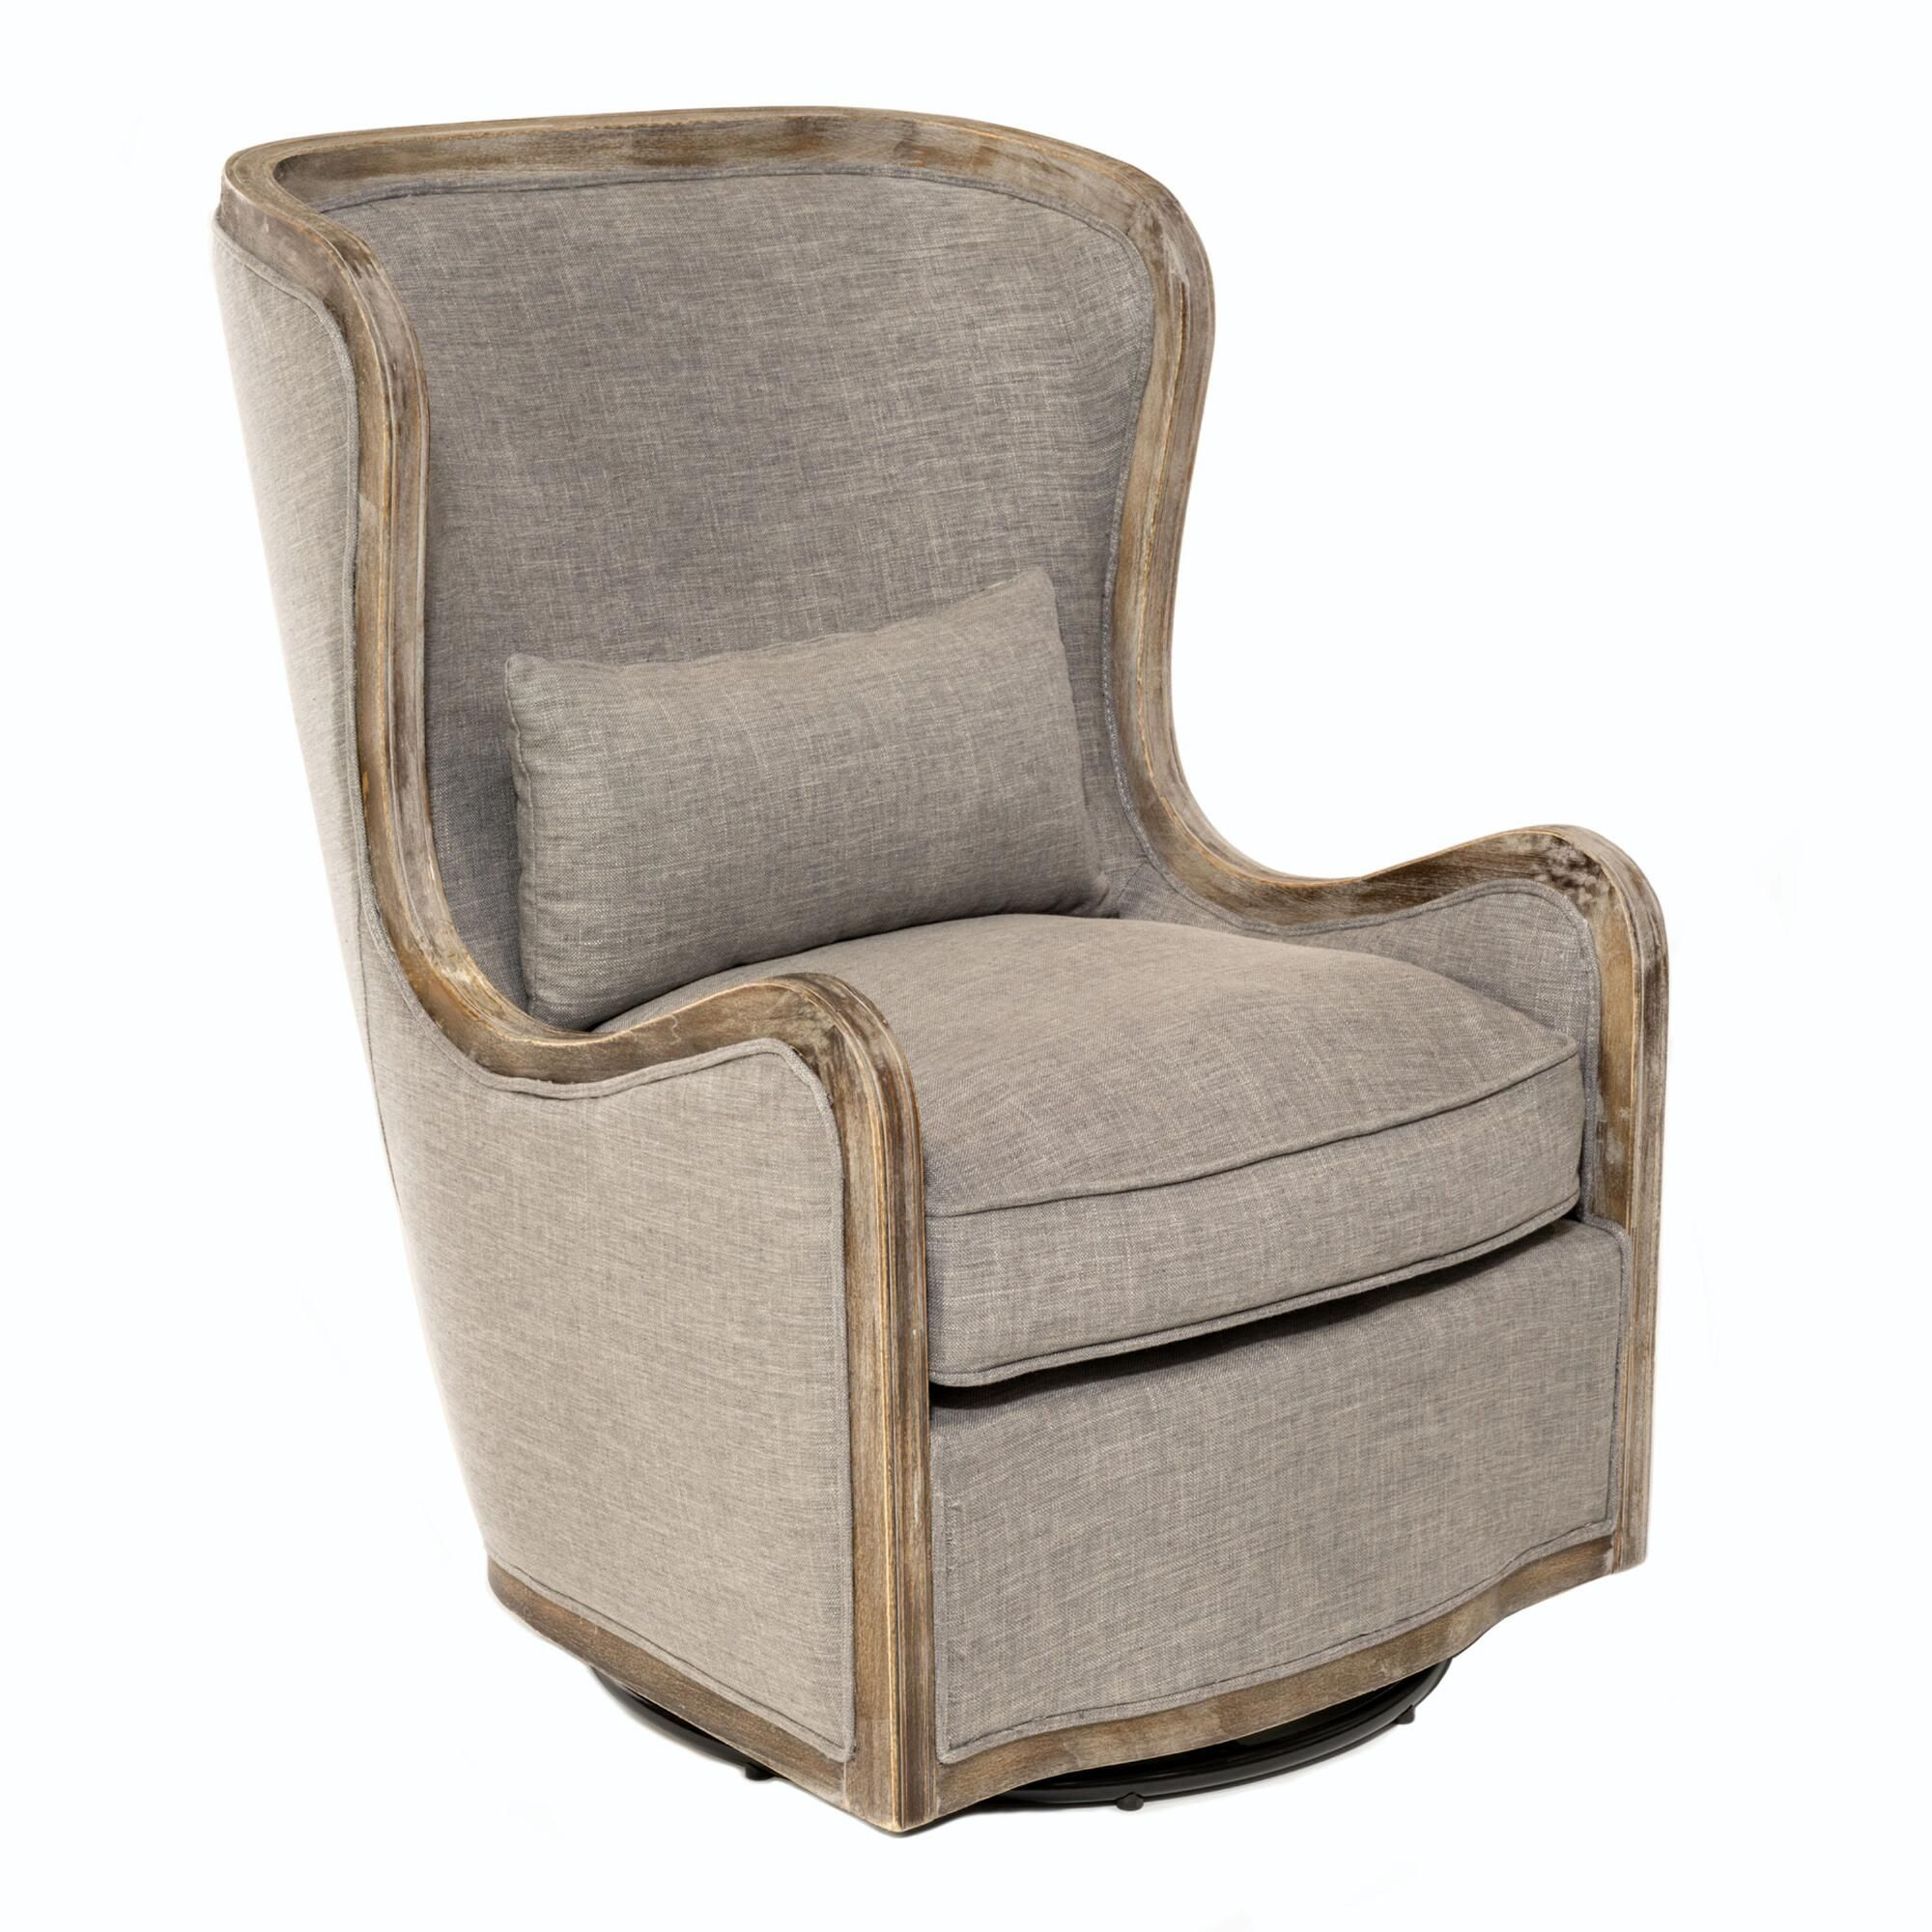 Gray Linen And Wood Valeri Upholstered Swivel Armchair In 2020